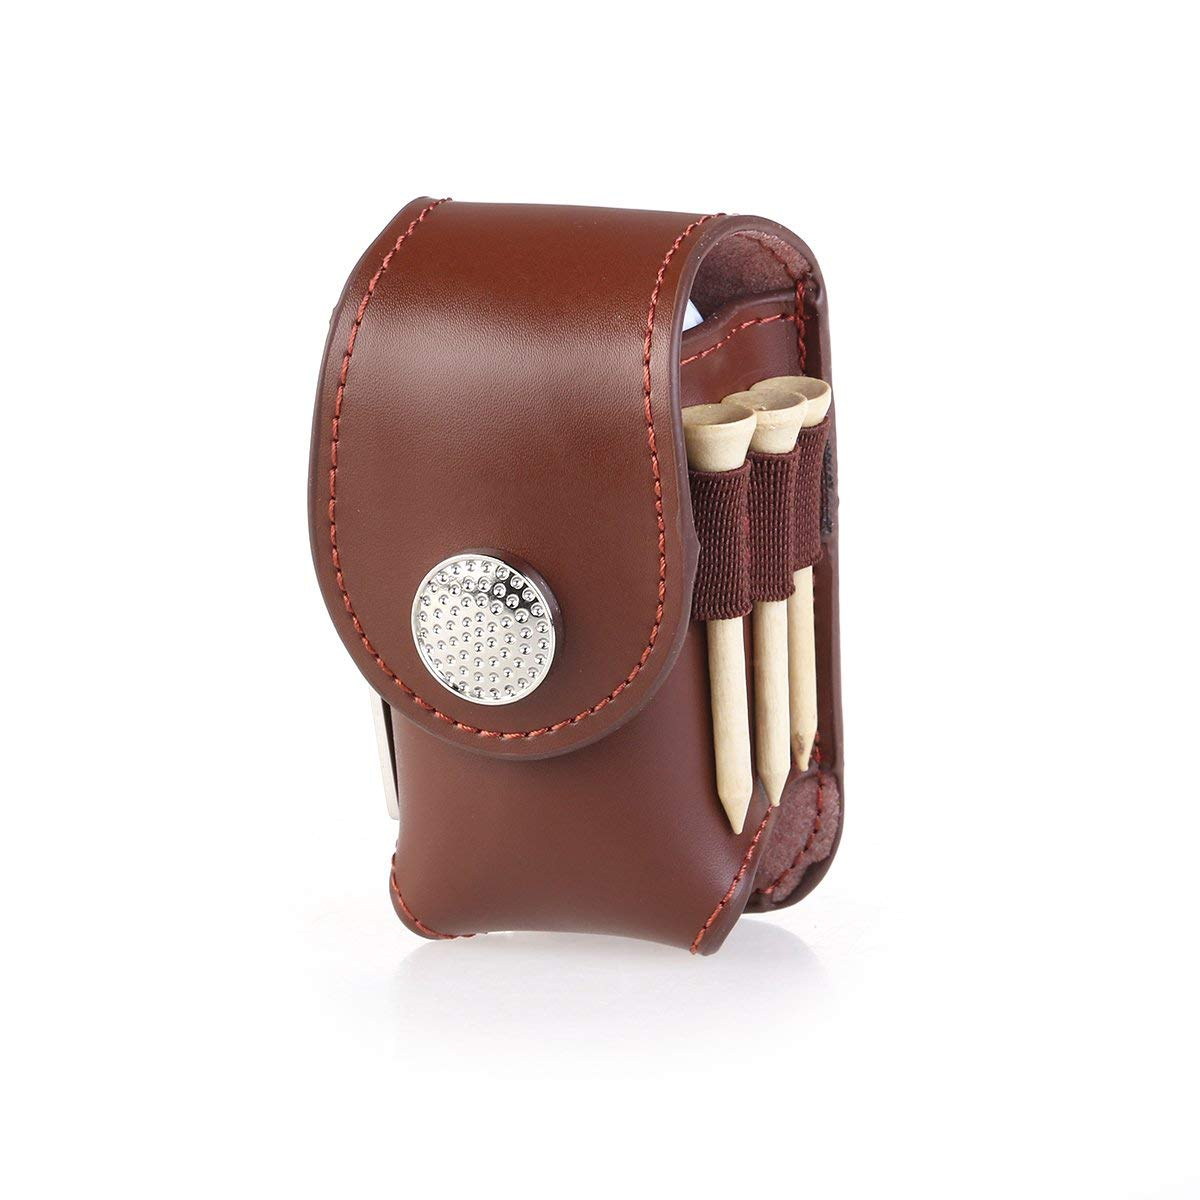 WINOMO Golf Tee Pouch Mini Portable Clip on Golf Ball Holder Pouch Bag Hold 2 Balls Golfer Aid Tool Gift (Brown)